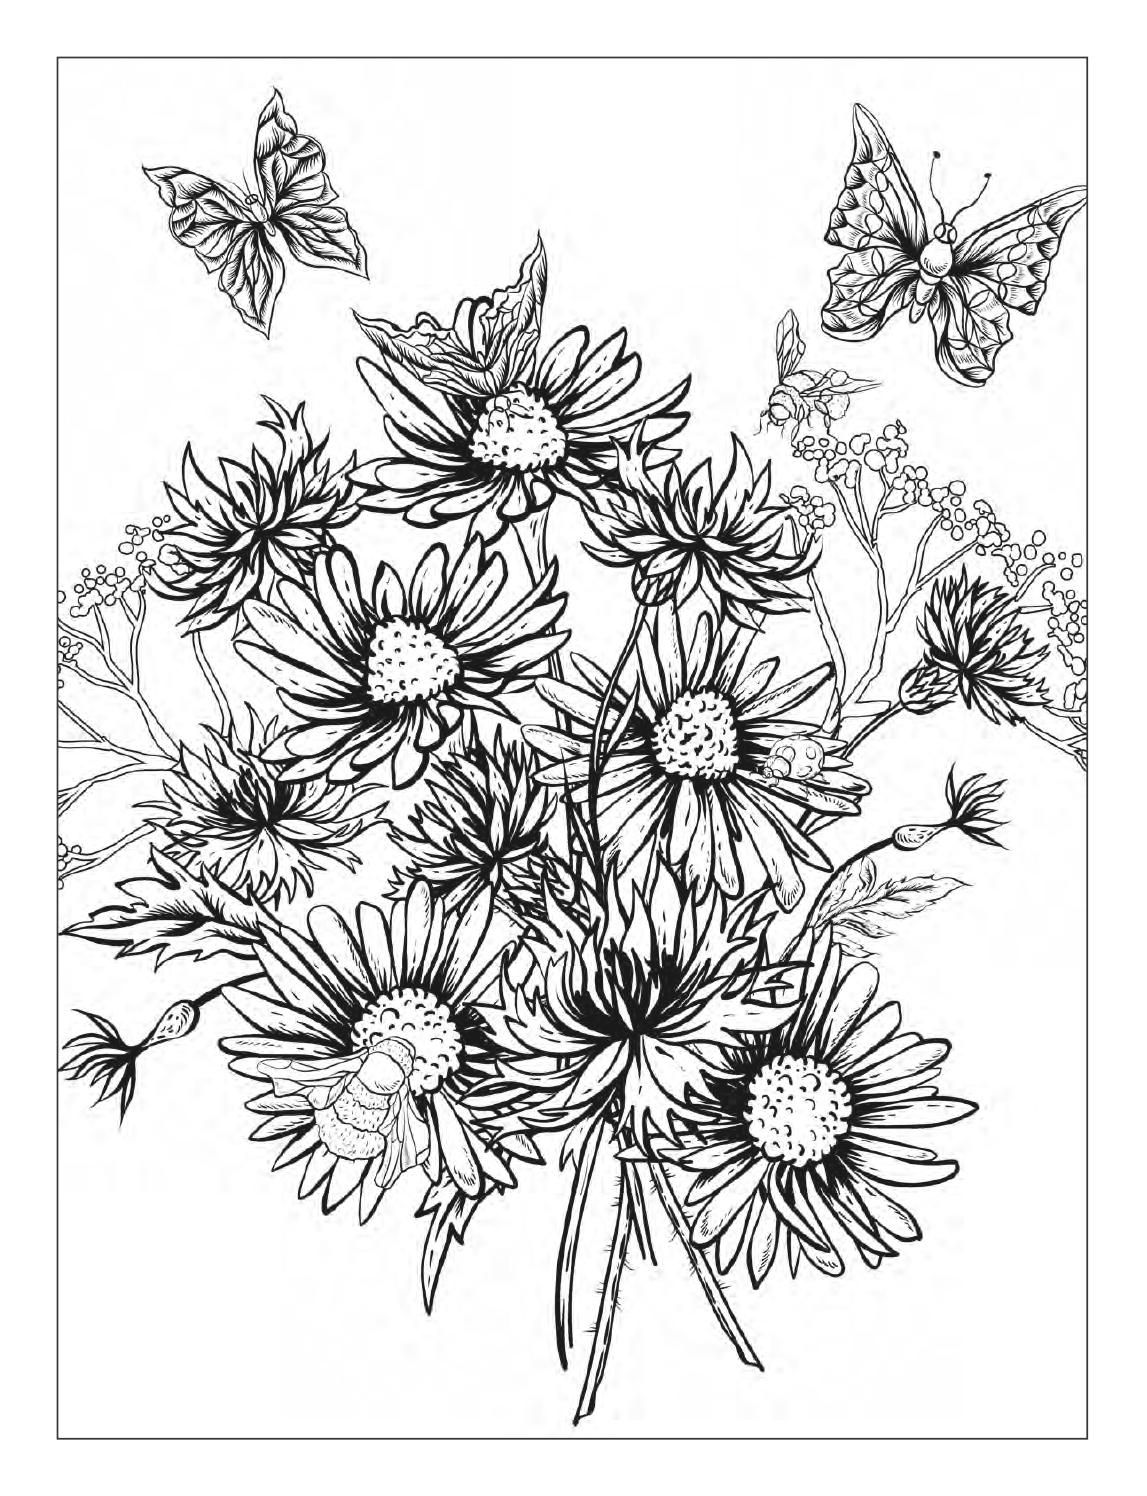 detailed flower coloring pages detailed flower coloring pages flower coloring detailed pages